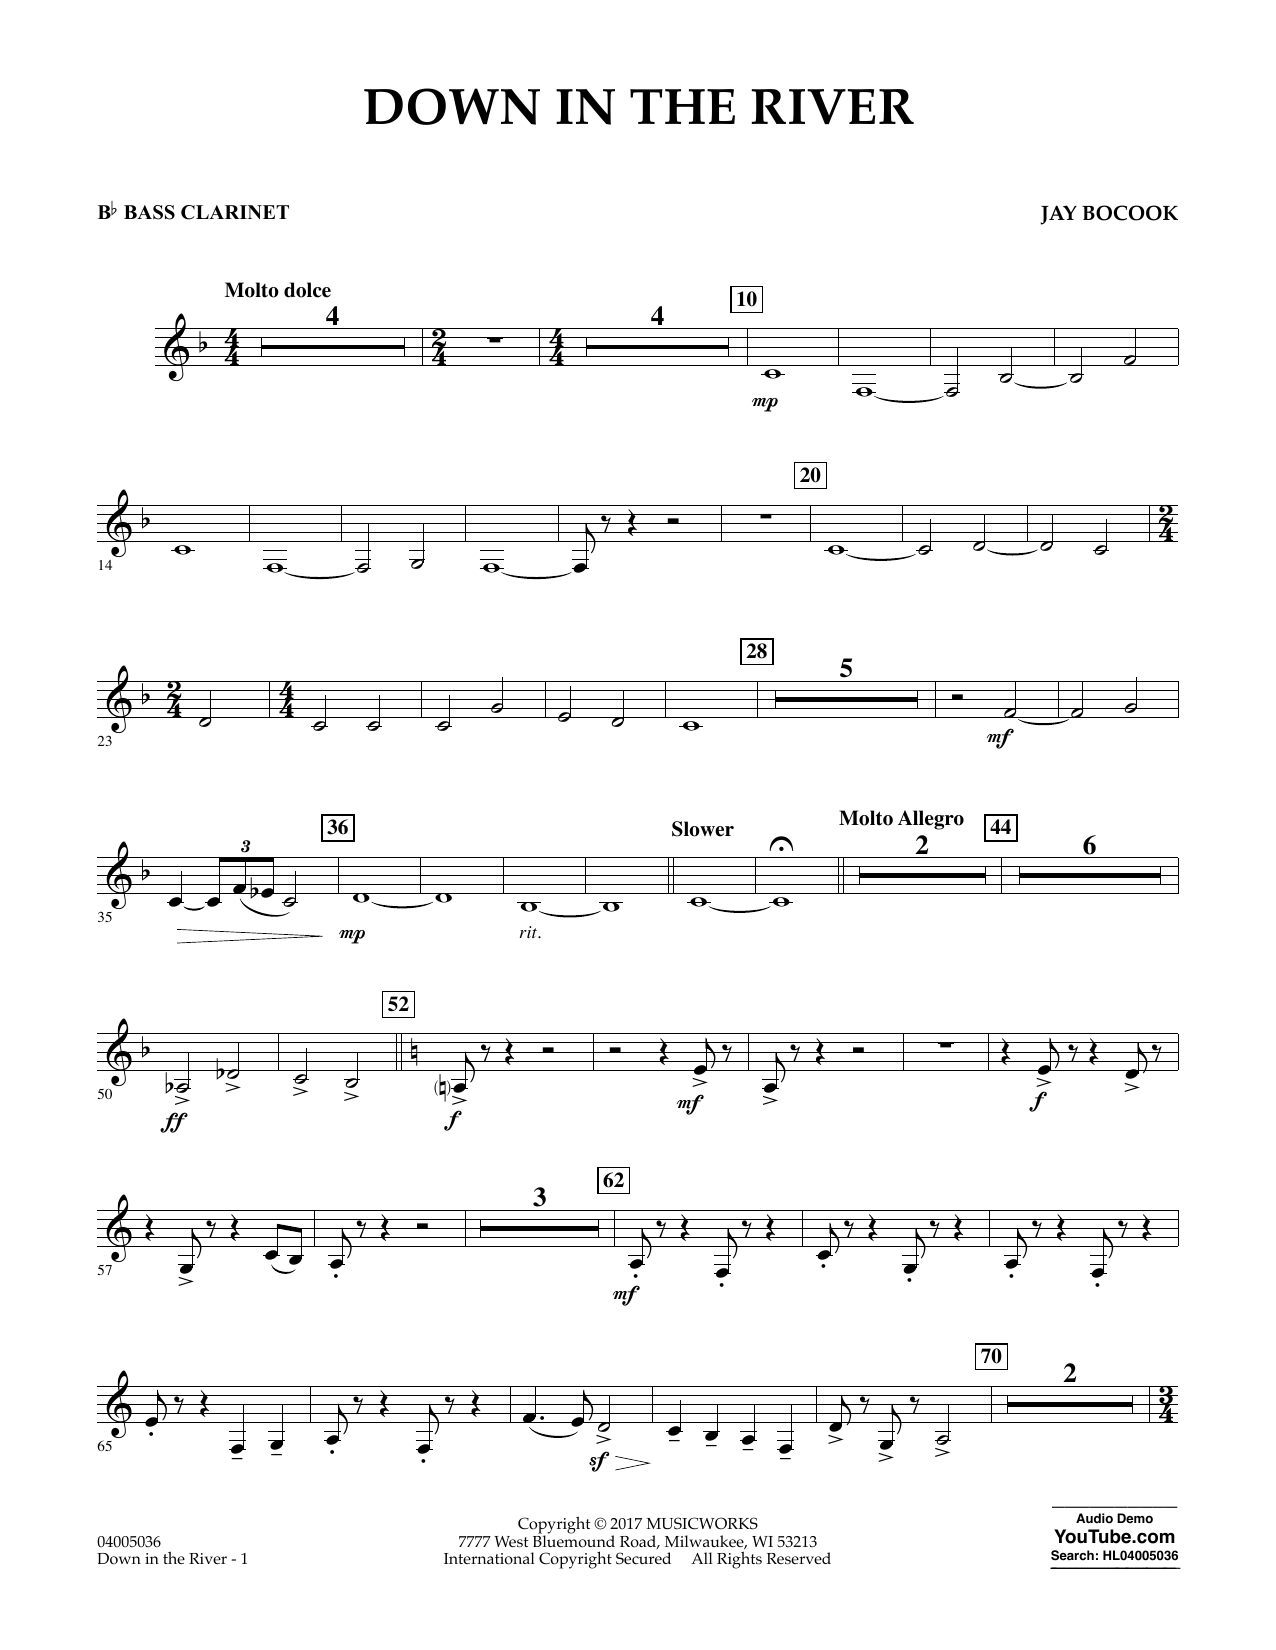 Jay Bocook Down in the River - Bb Bass Clarinet sheet music notes and chords. Download Printable PDF.